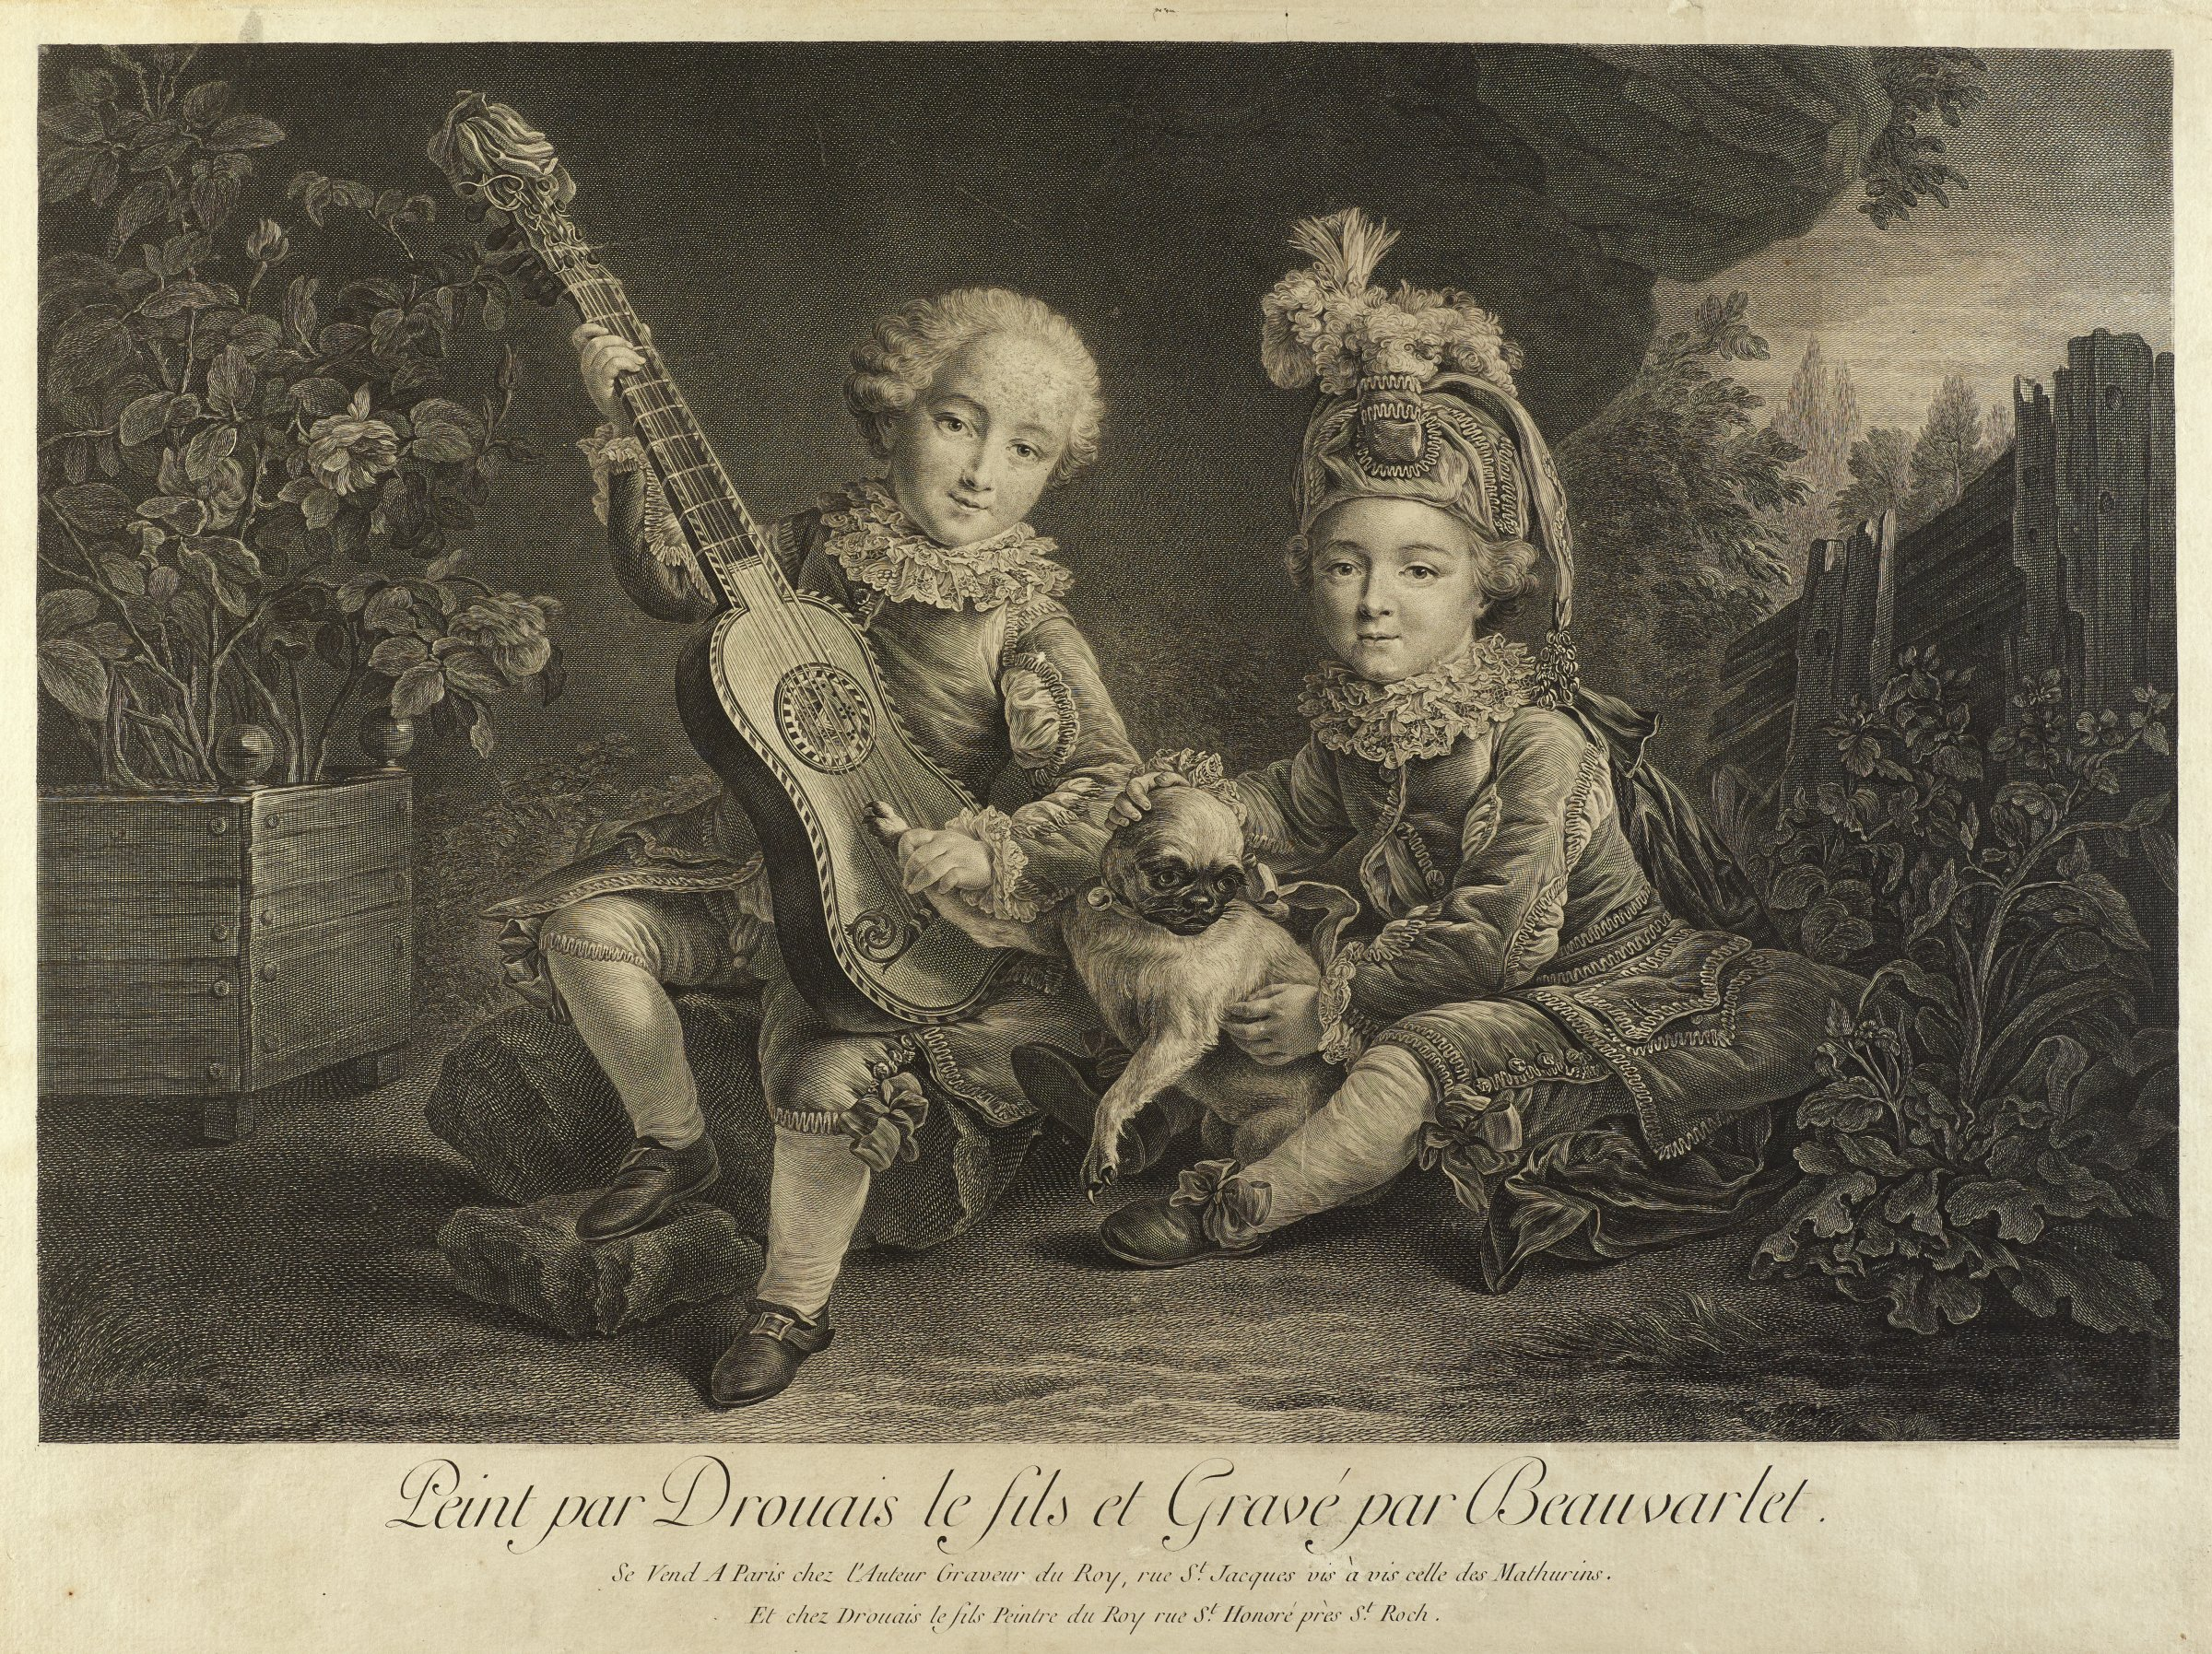 Two elaborately dressed children sit with a dog in a garden. The child on the left holds a small guitar, and he grabs the dog's paw to strum the instrument.